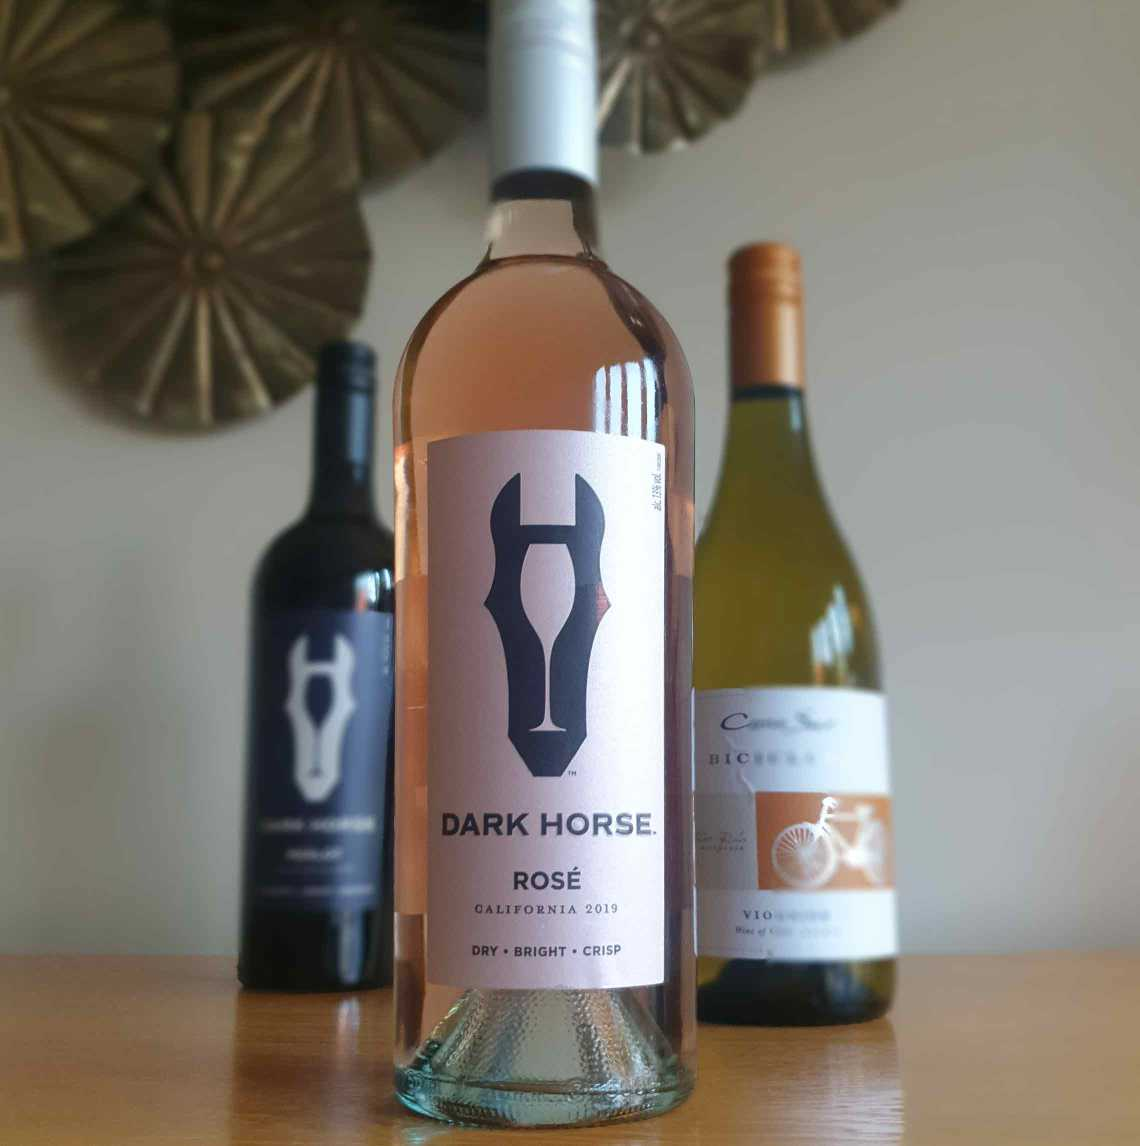 A bottle of Dark Horse Rosé wine. The Best Foodie Mother's Day Gifts.